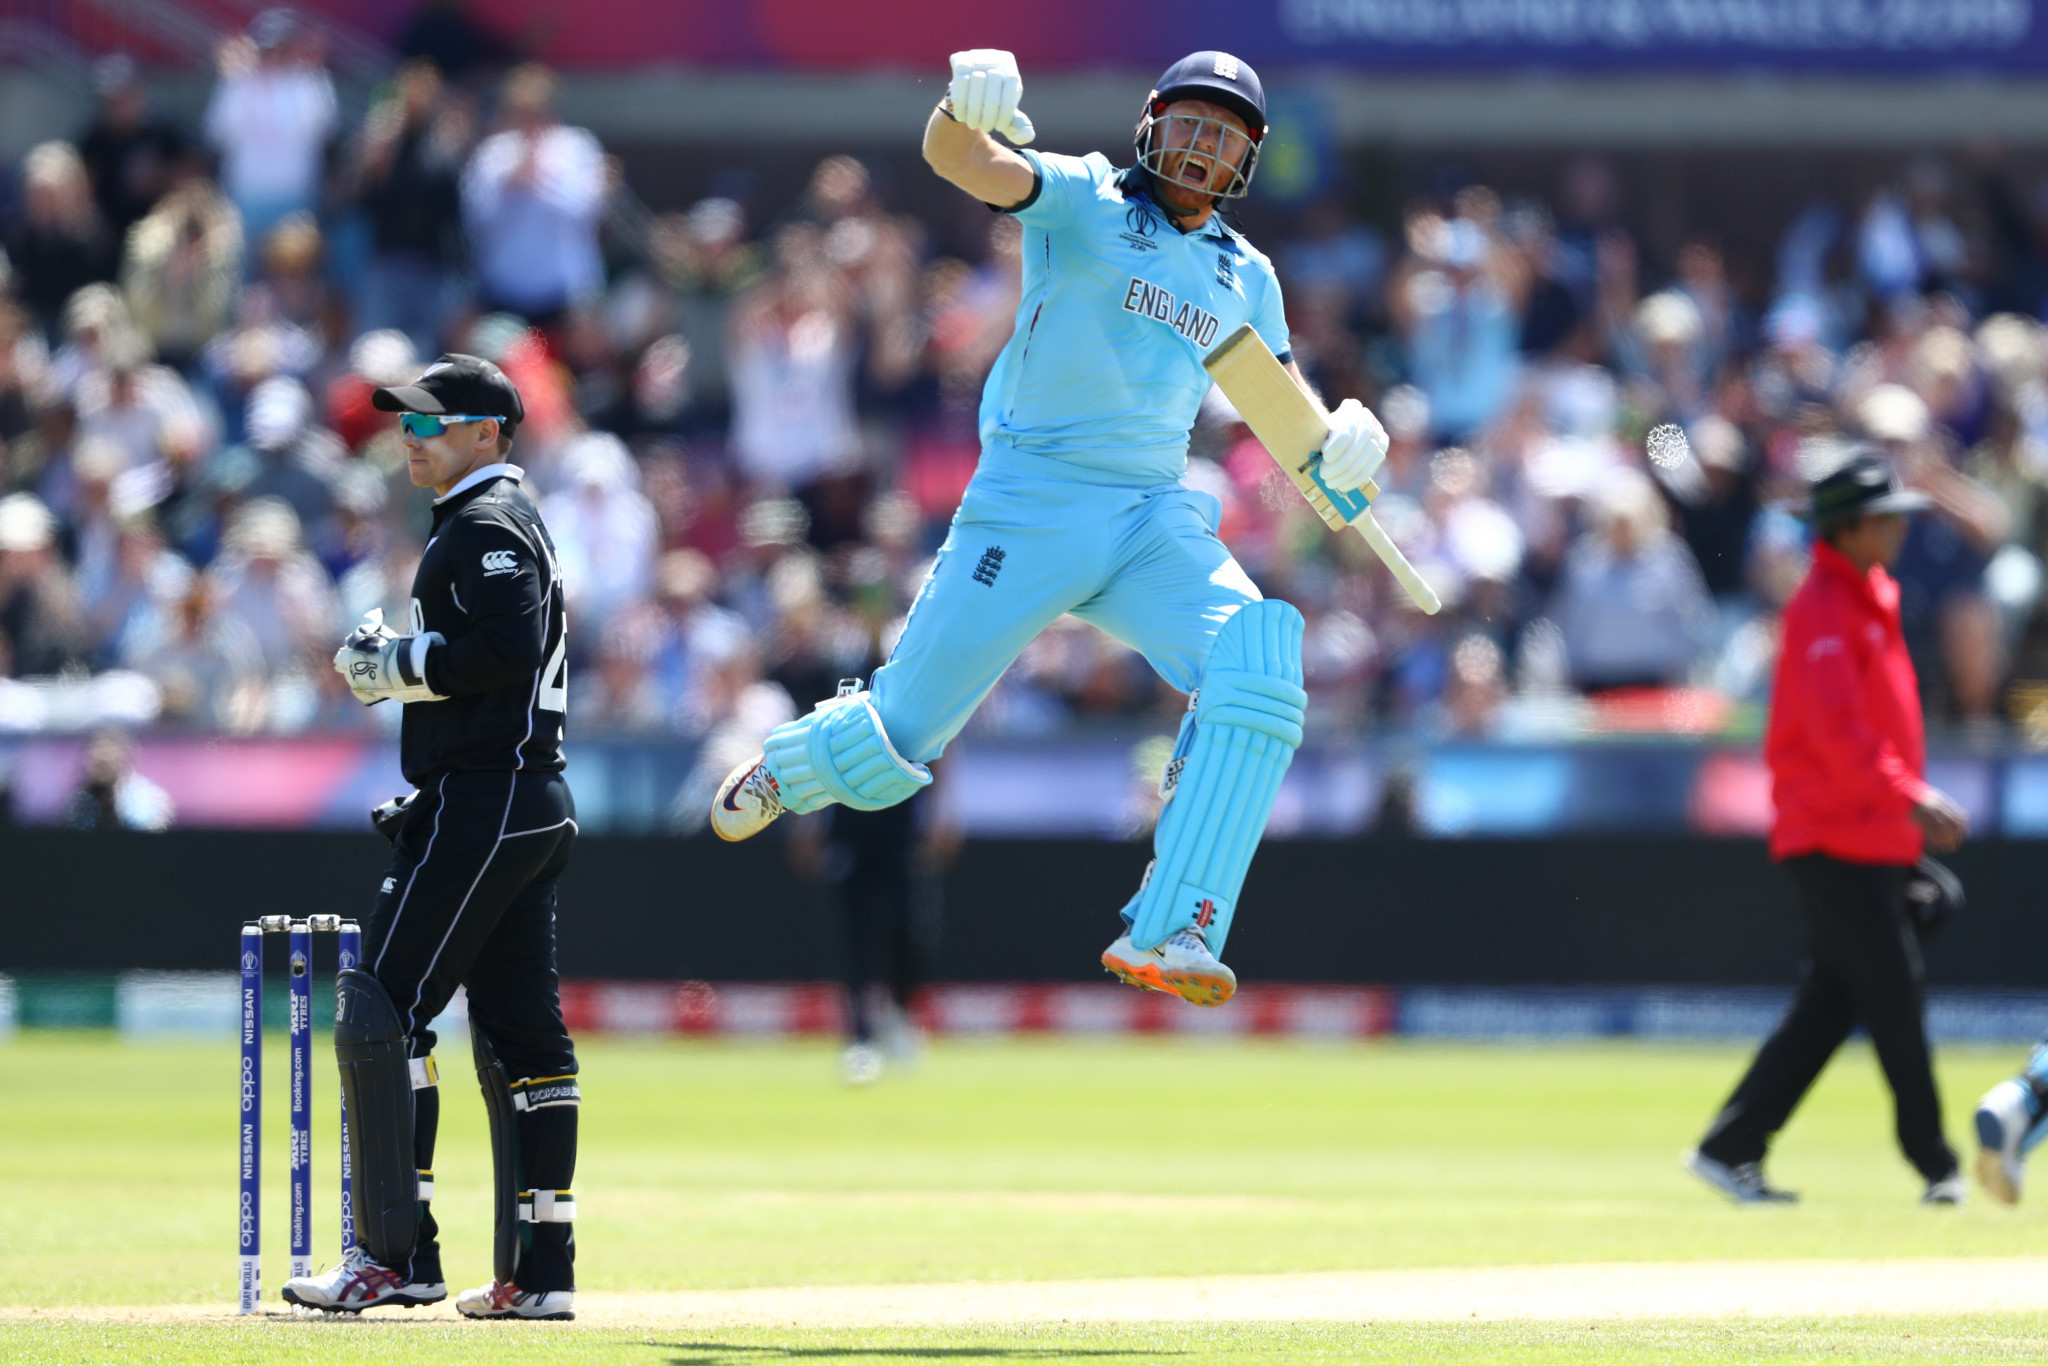 Jonny Bairstow hit his second consecutive century to guide England to the semi-finals ©Getty Images